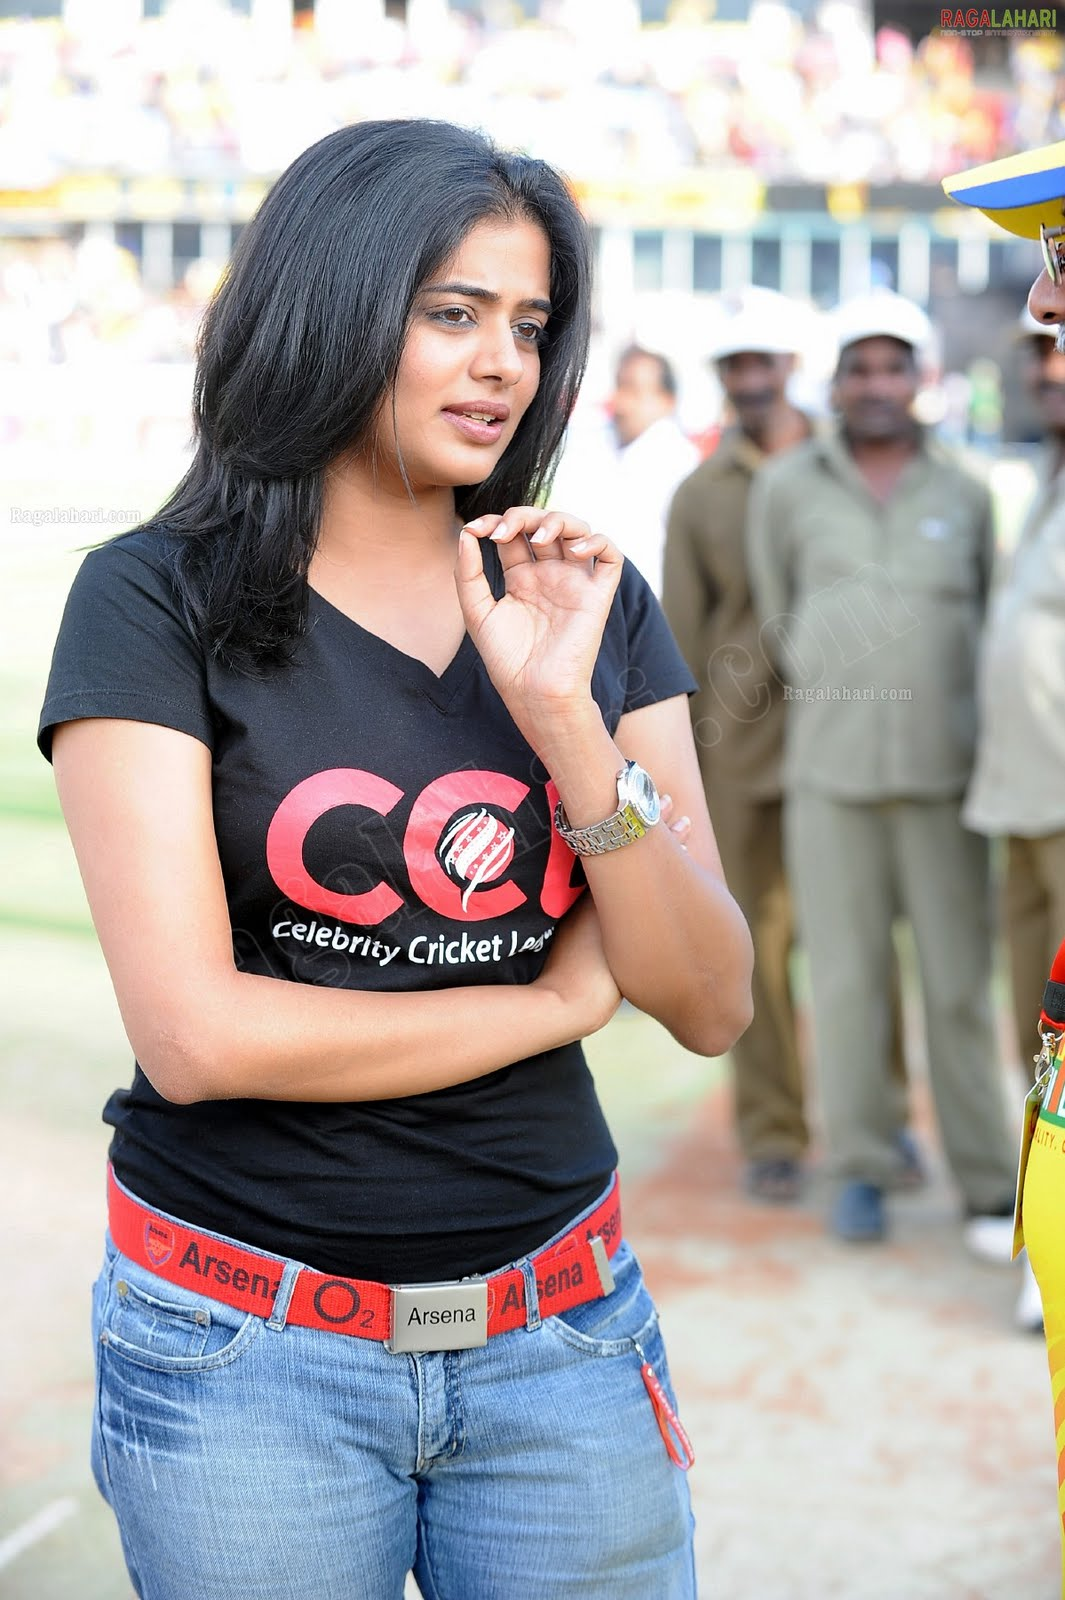 http://3.bp.blogspot.com/-D4LH7hCHTAk/TfoL82yXK-I/AAAAAAAAISo/j2_drwhVeKM/s1600/priyamani-high-resolution-celebrity-cricket-league1-0011_indian%2Bmasala_01indianmasala.blogspot.com.jpg